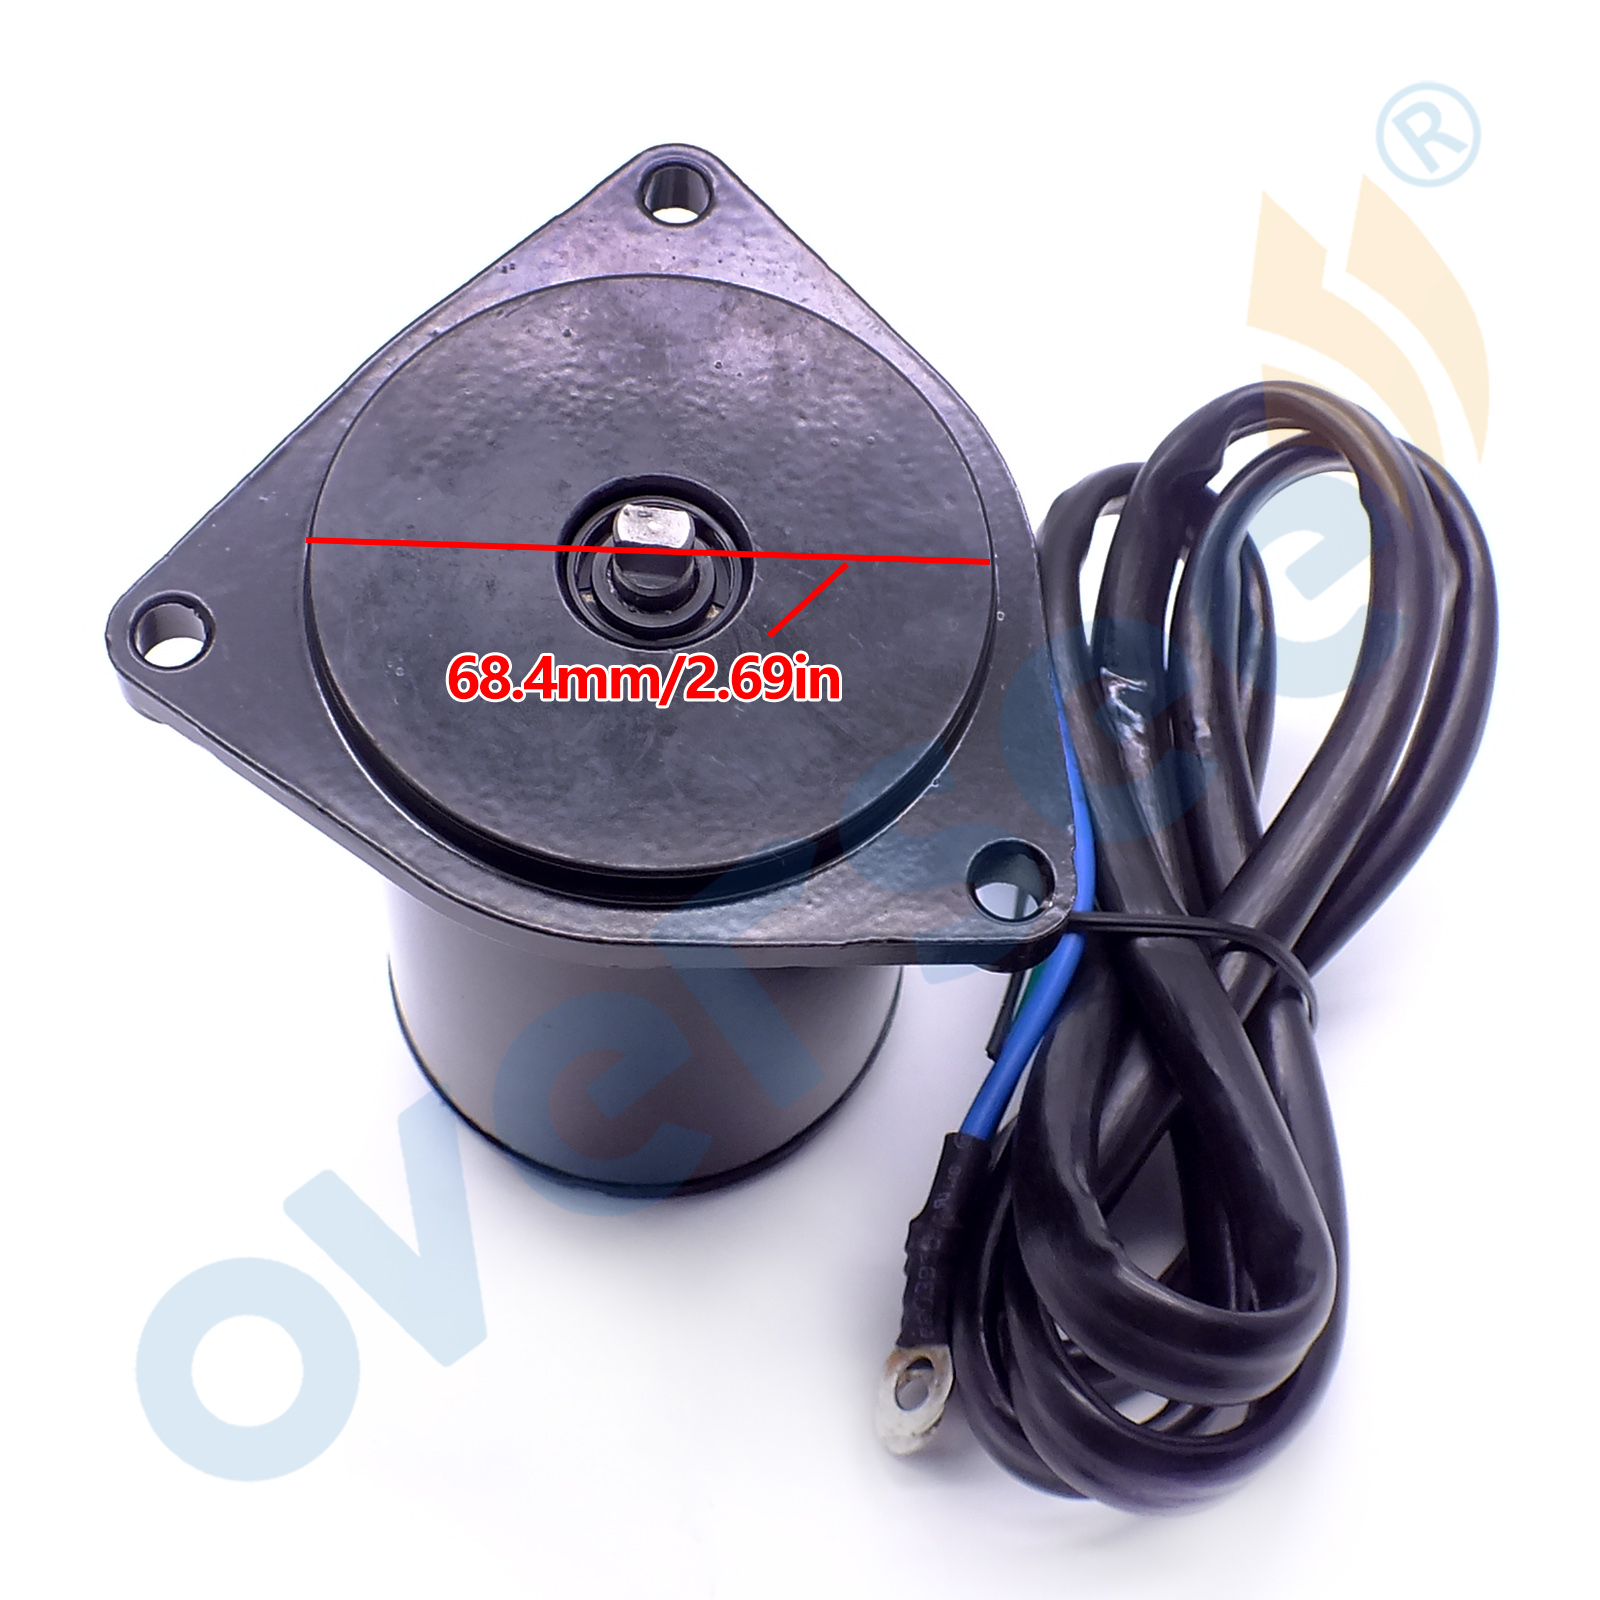 hight resolution of 6h1 43880 powertilt trim motor for yamaha outboard motor 50hp 55hp 60hp 70hp 85hp 90hp 6h1 43880 02 430 22028 in boat engine from automobiles motorcycles